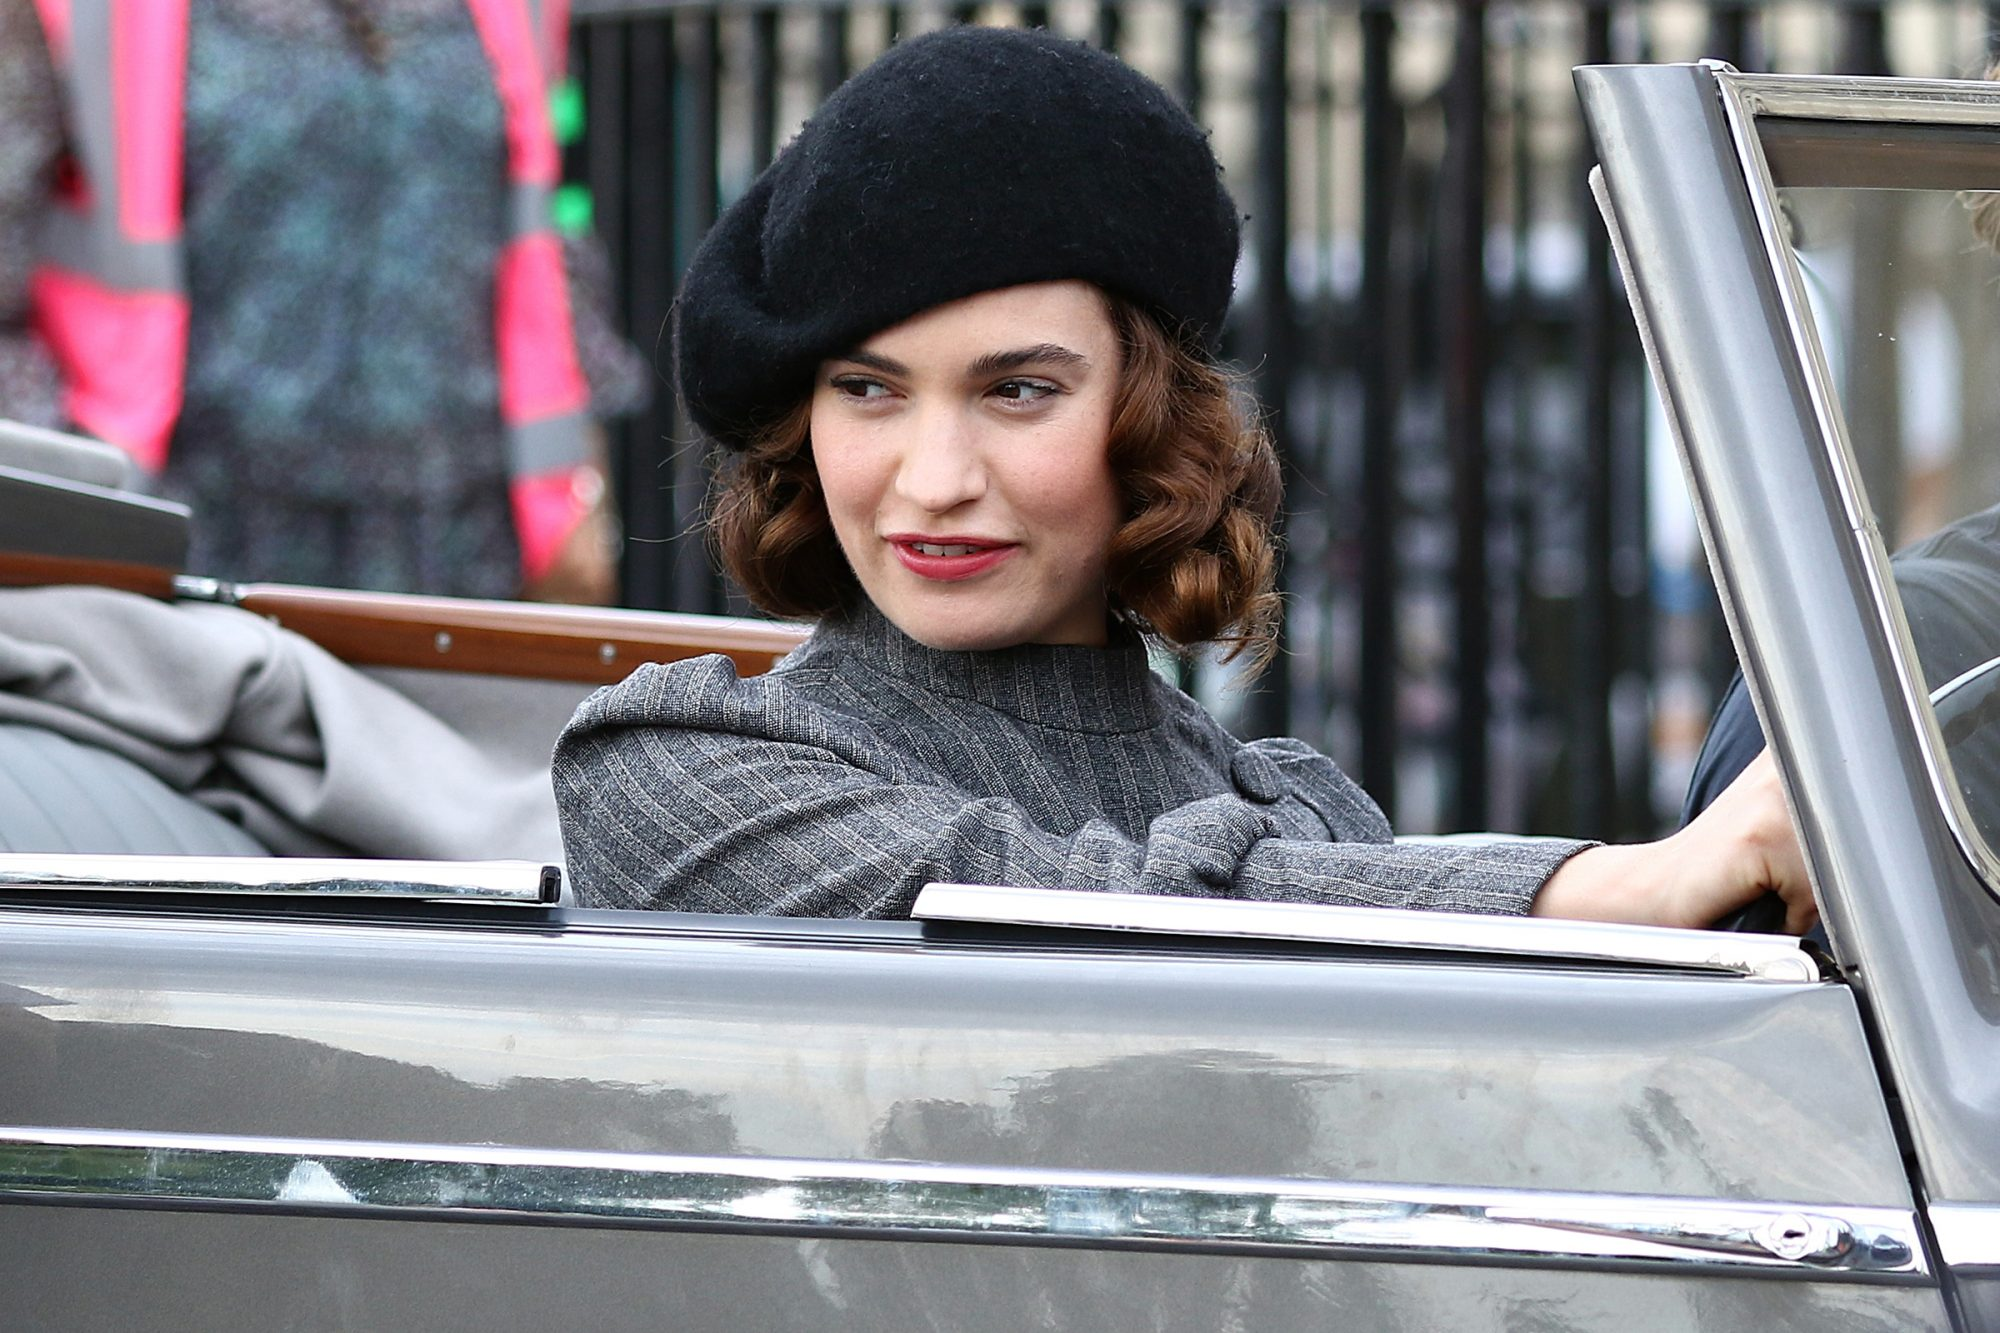 Lily James Driving A Vintage Convertible Jaguar While Filming For New BBC Romantic Comedy Drama The Pursuit Of Love In Bath